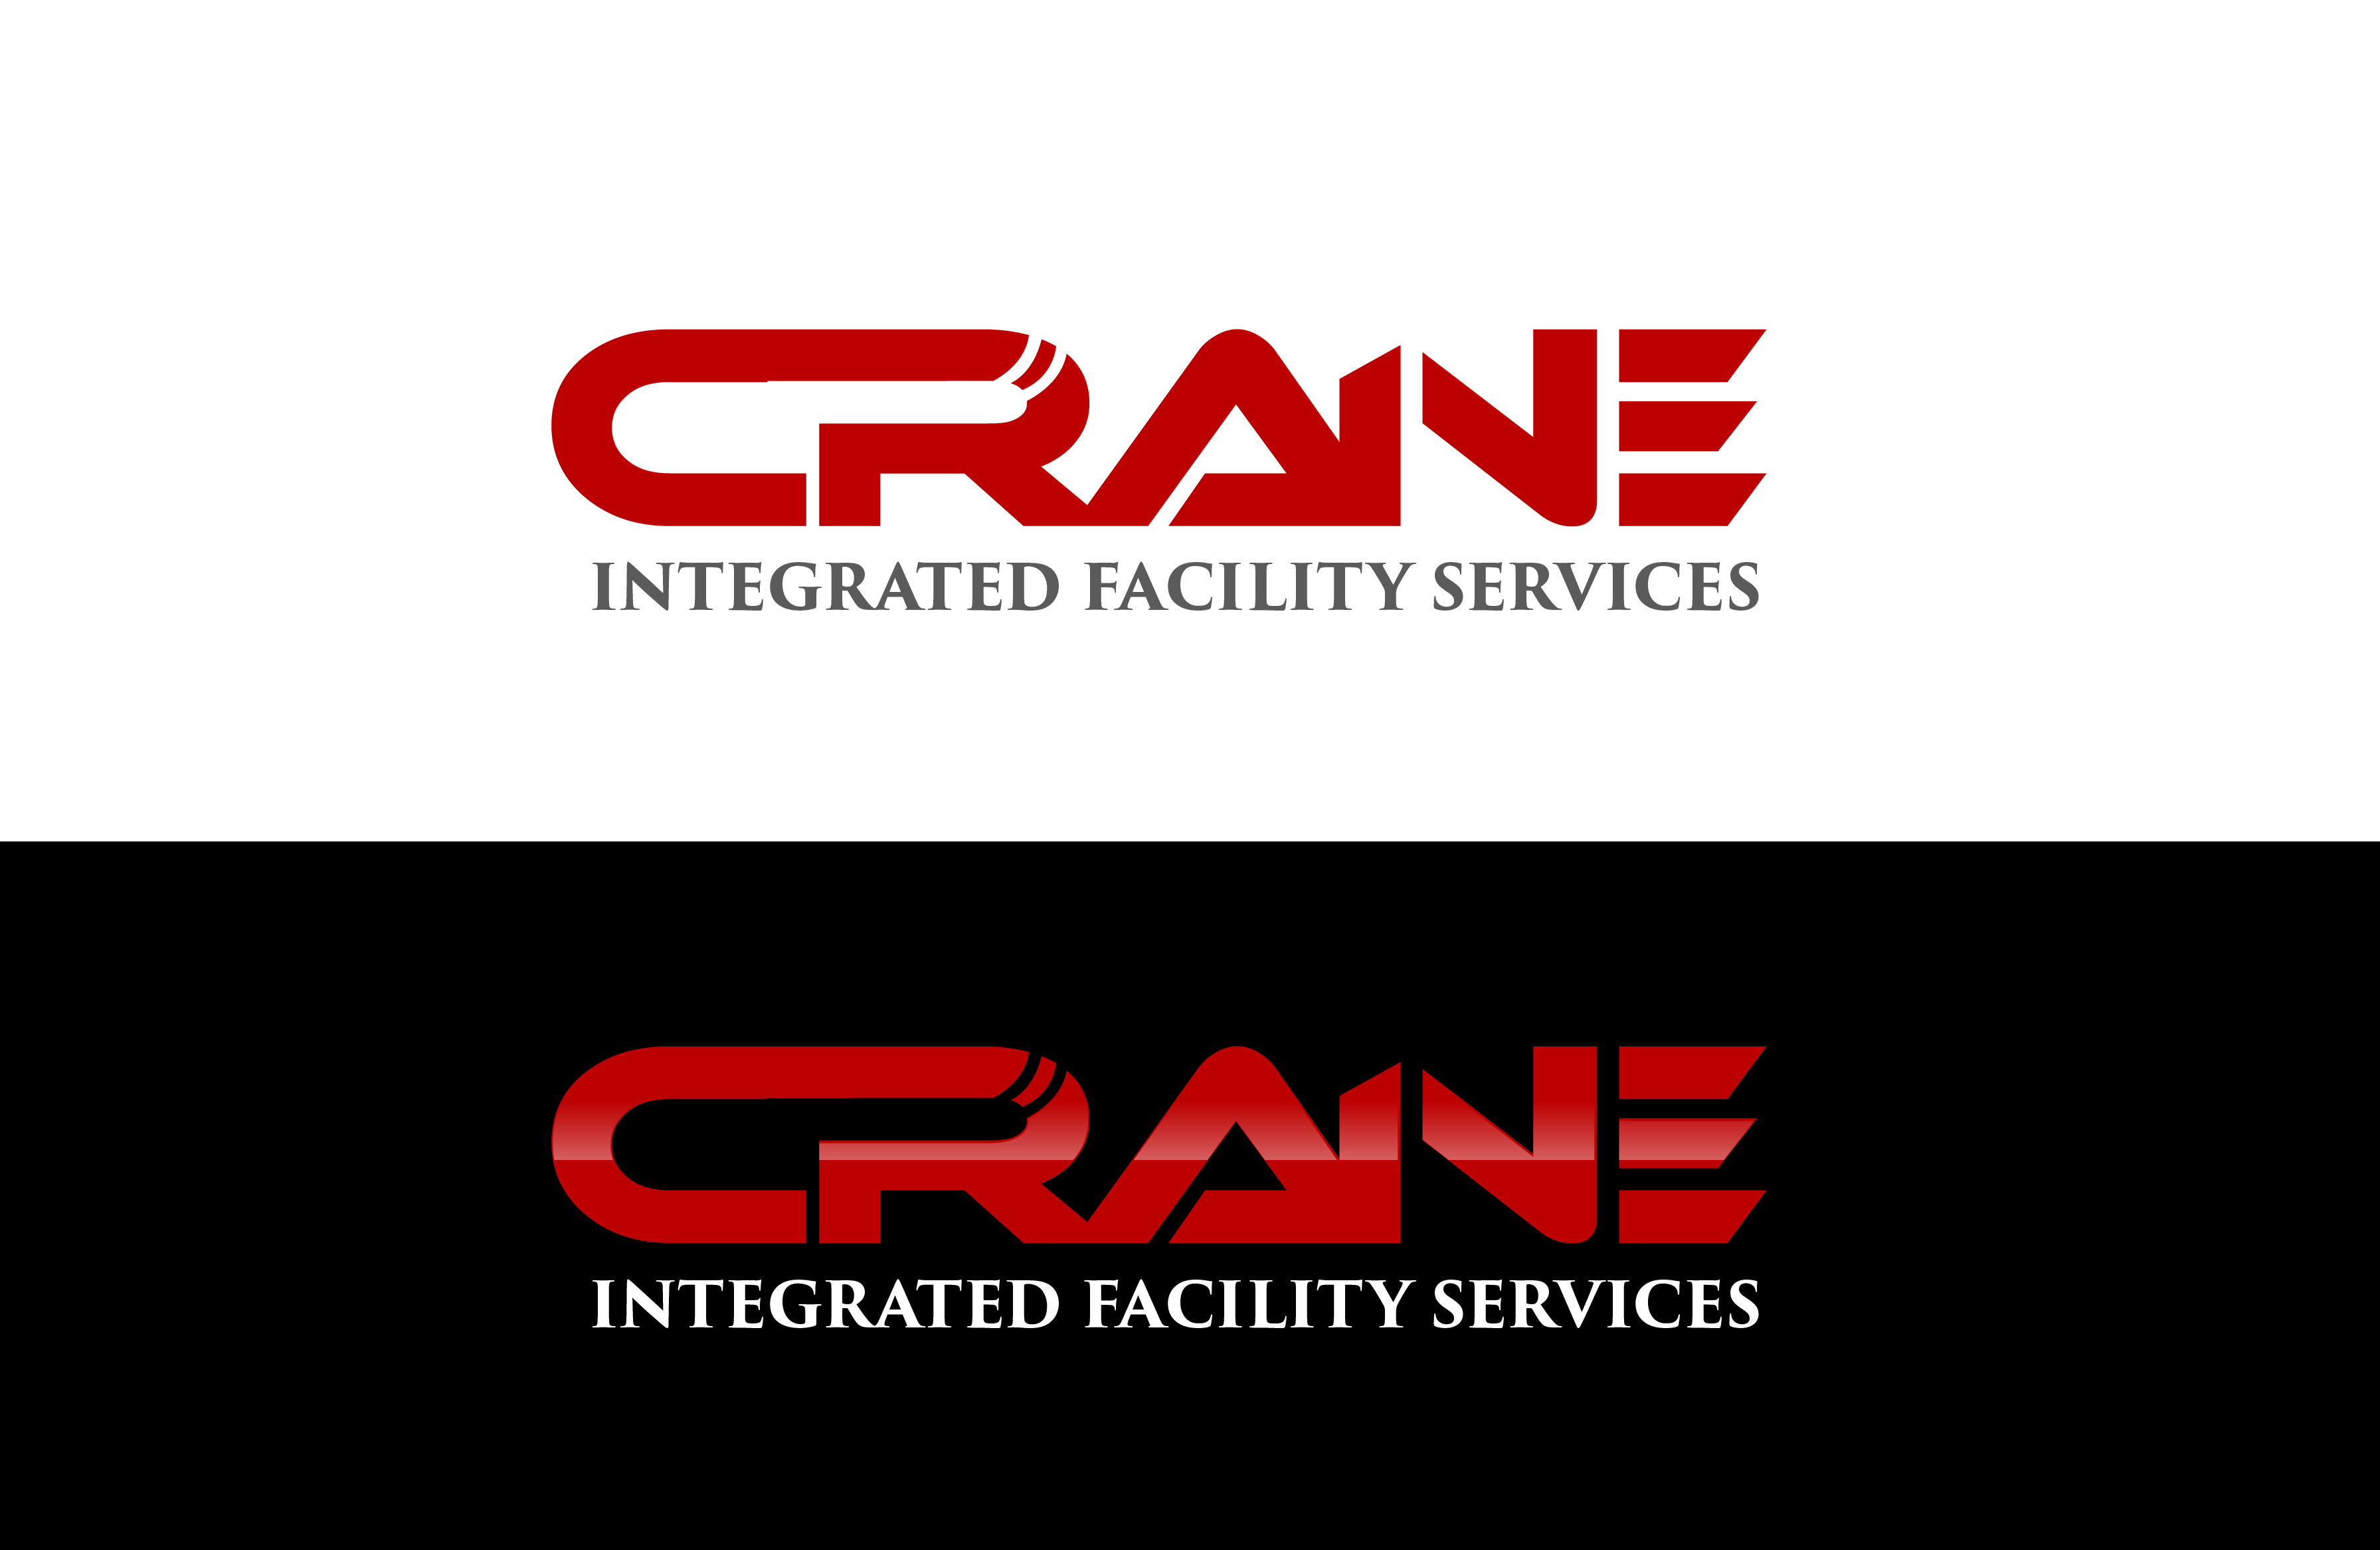 Logo Design by Cyril bail Geronimo - Entry No. 23 in the Logo Design Contest Inspiring Logo Design for Crane Integrated Facility Services.